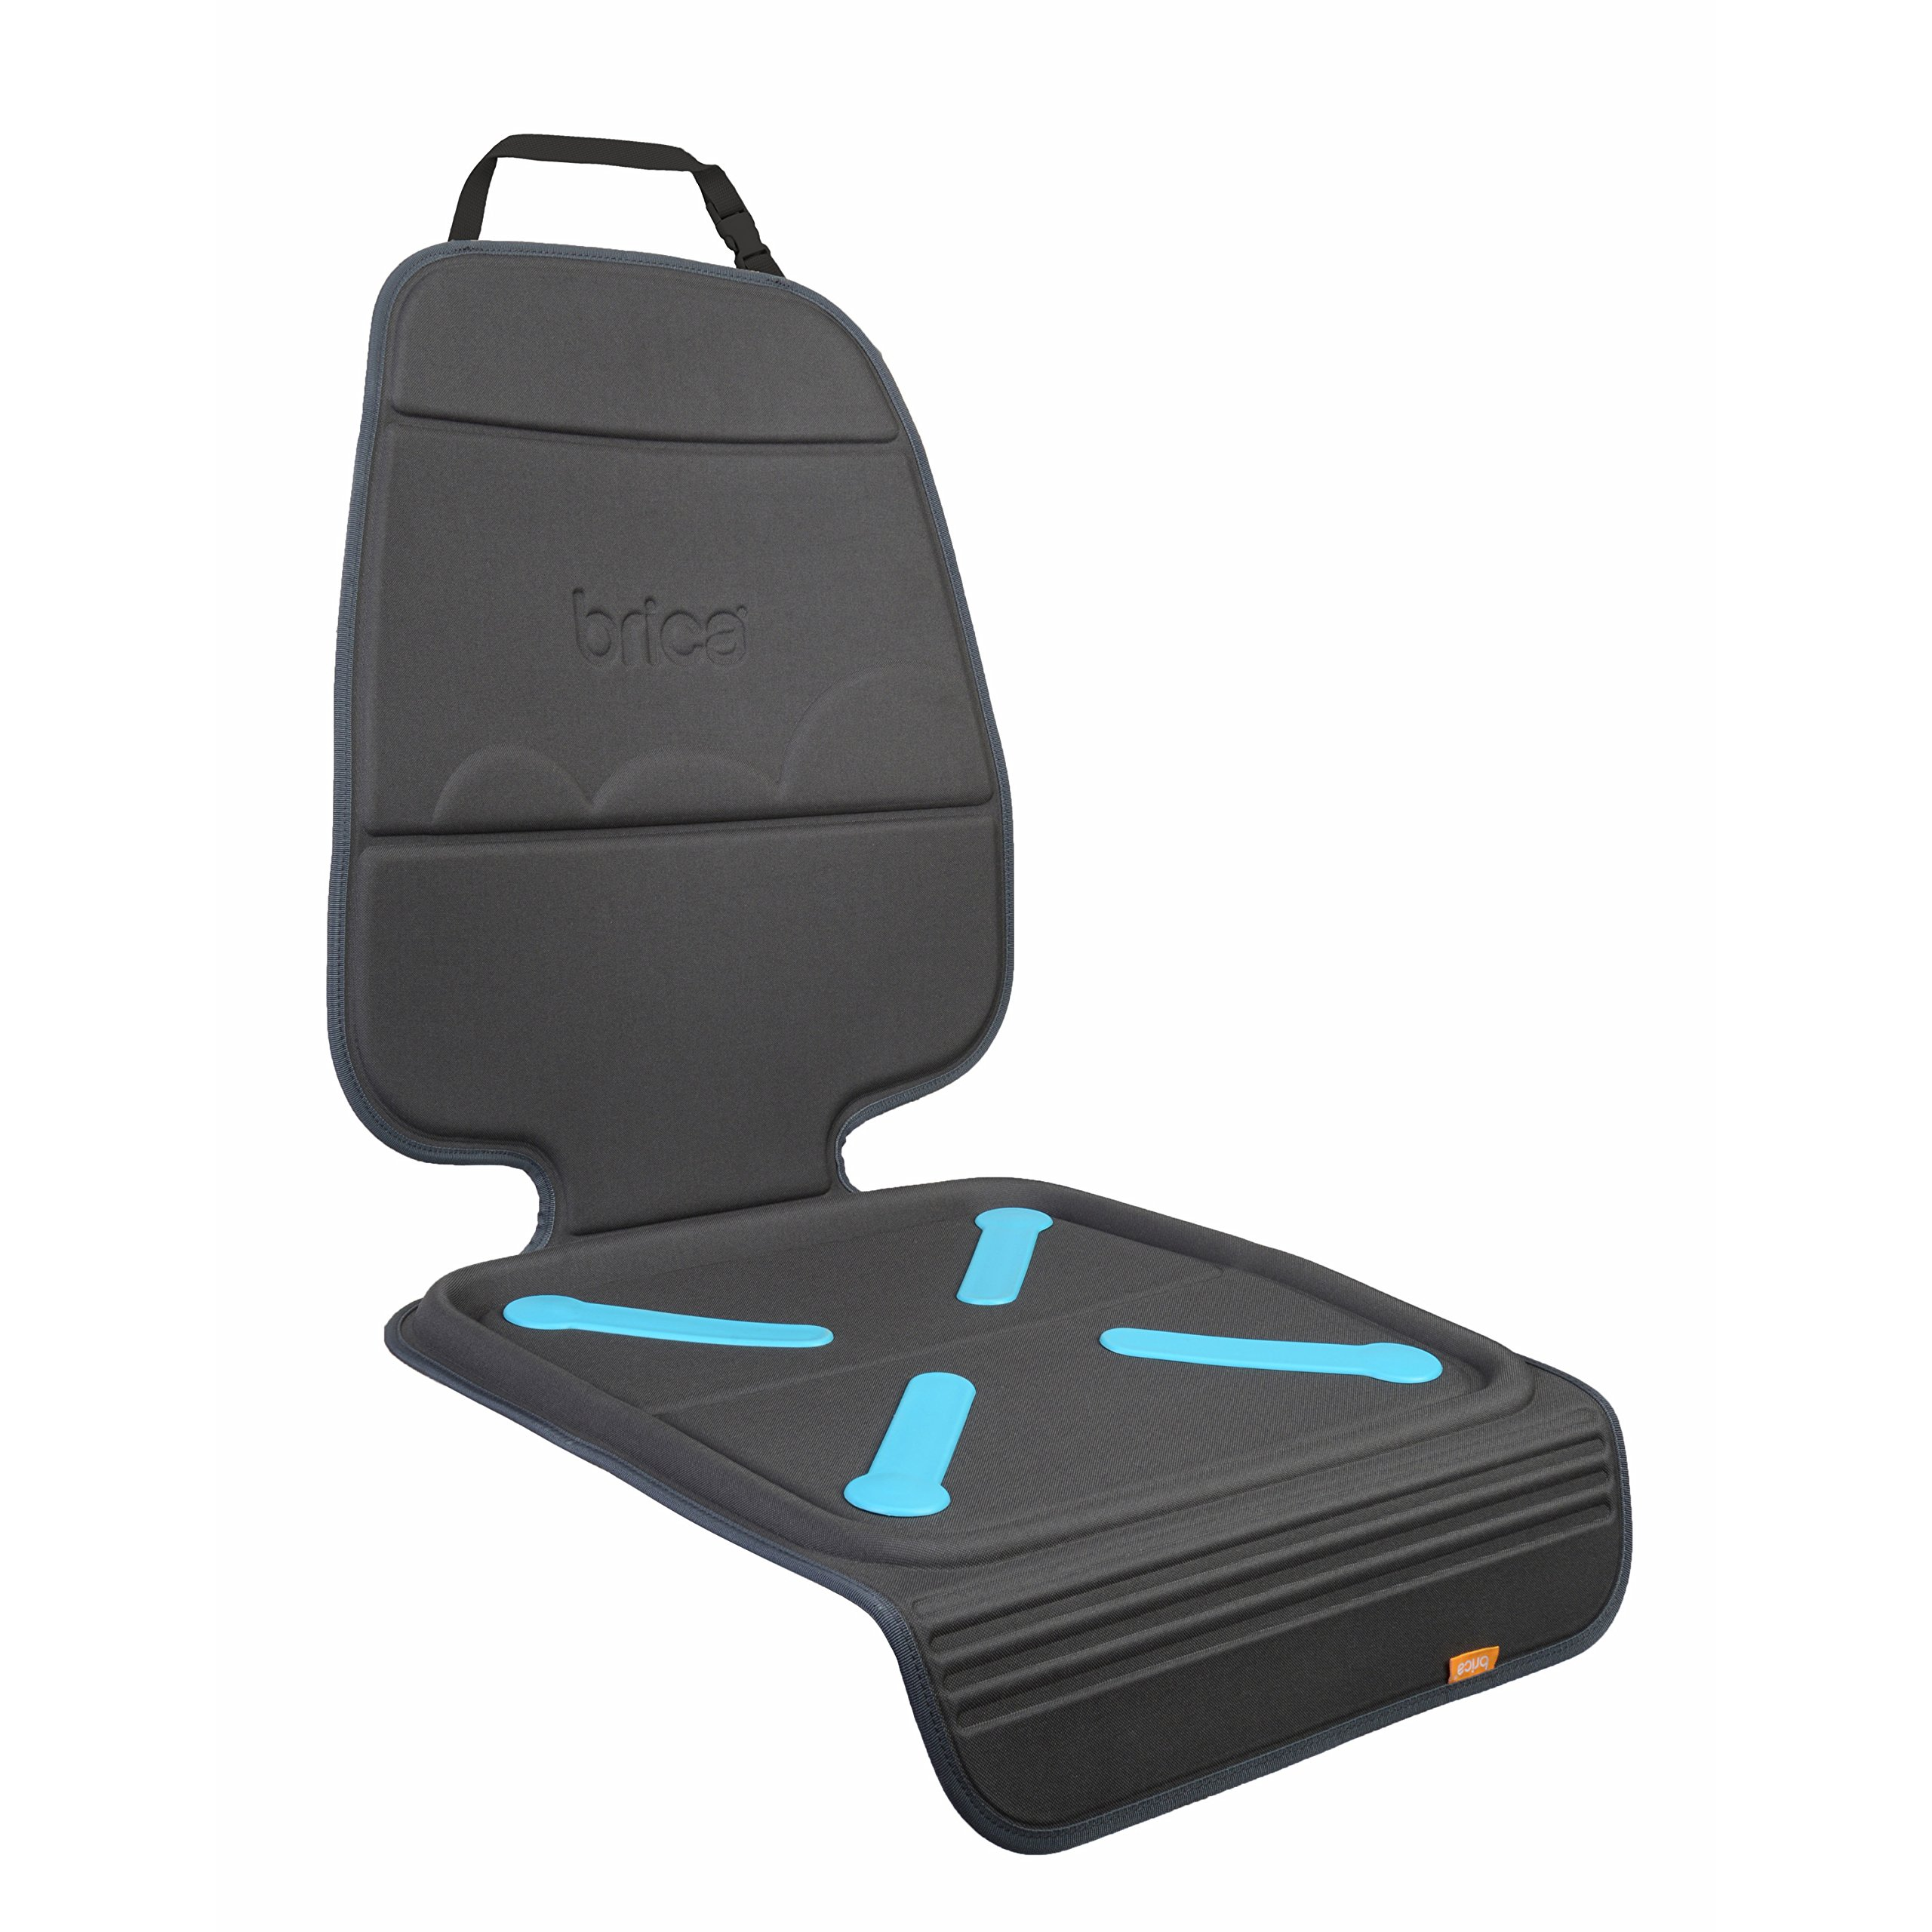 Amazon Child Car Seat Protector